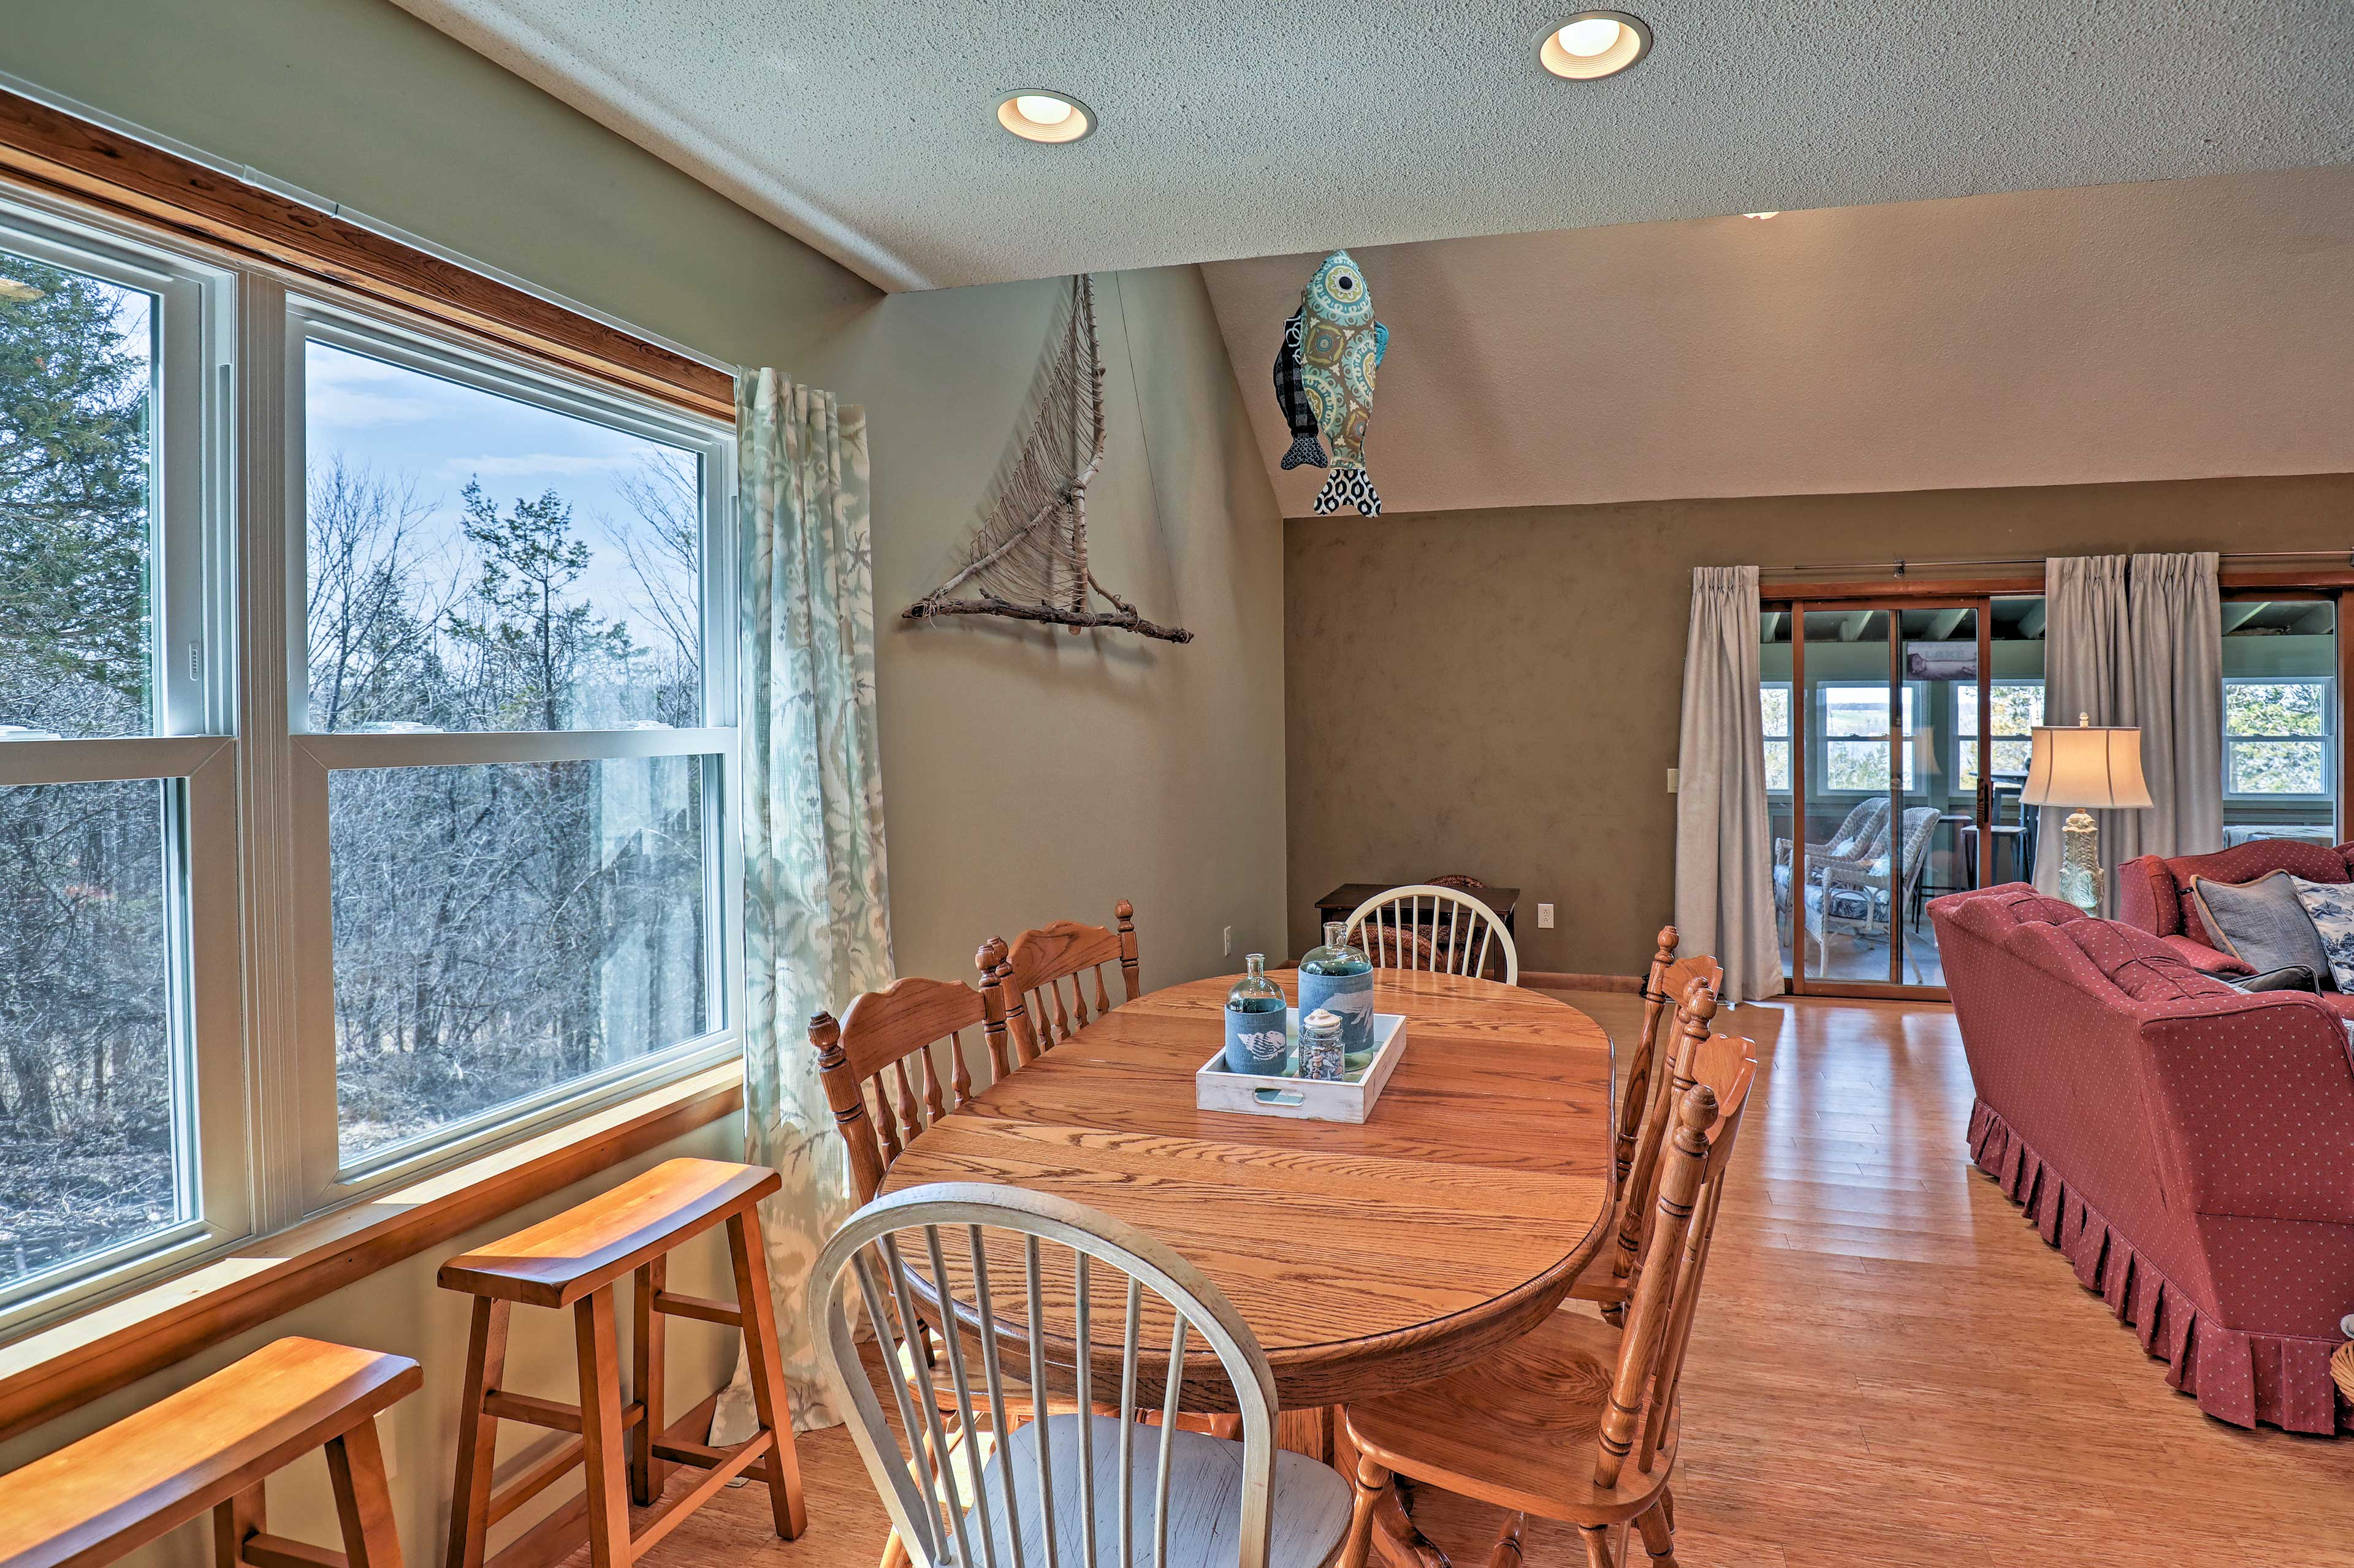 Enjoy family meals at the 6-person dining table.